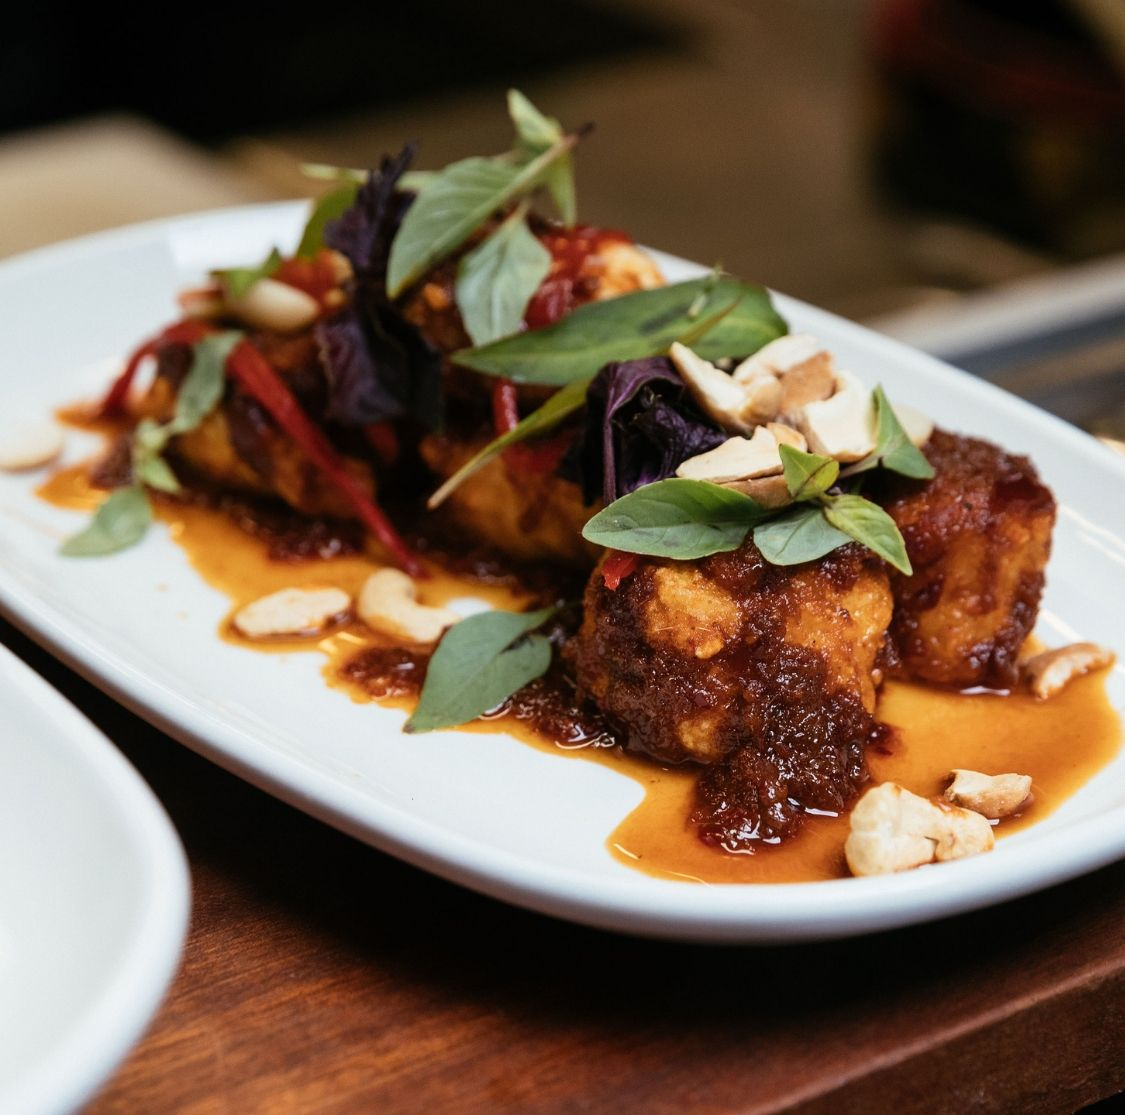 Tiki Thai CRISPY HAPUKA - Dry Red Curry, Cashew, Herbs, Pickled Chilli